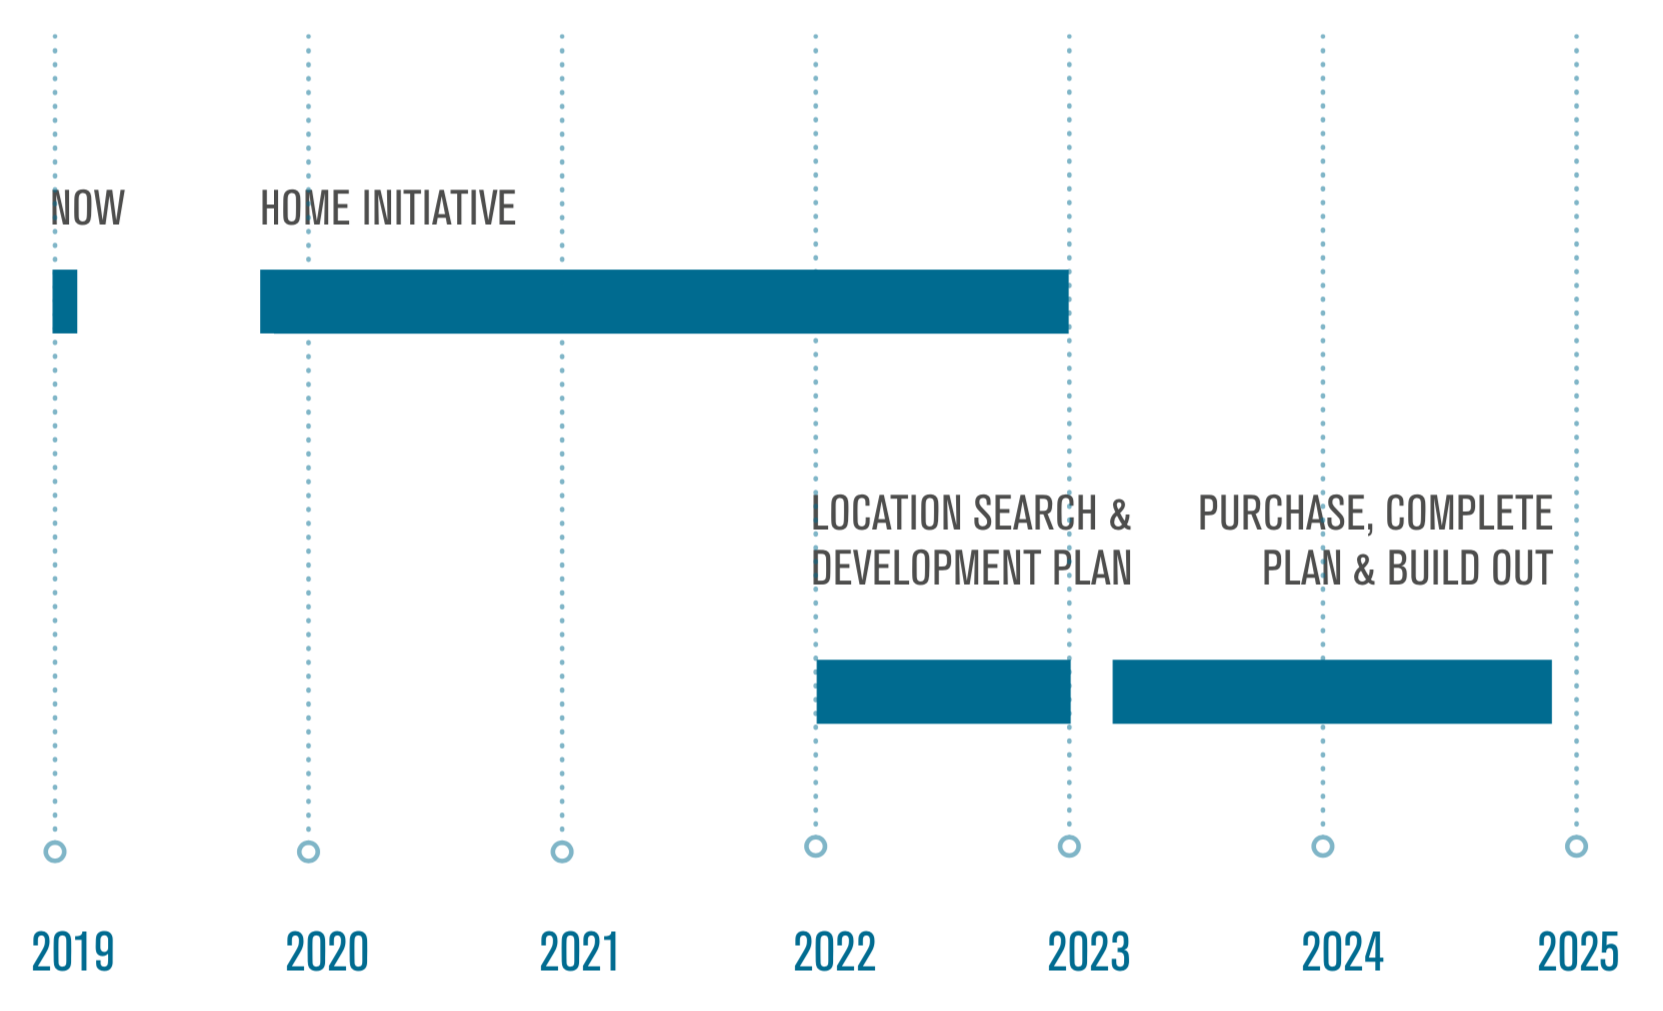 Bar graph of the timeline for the home initiative plan.